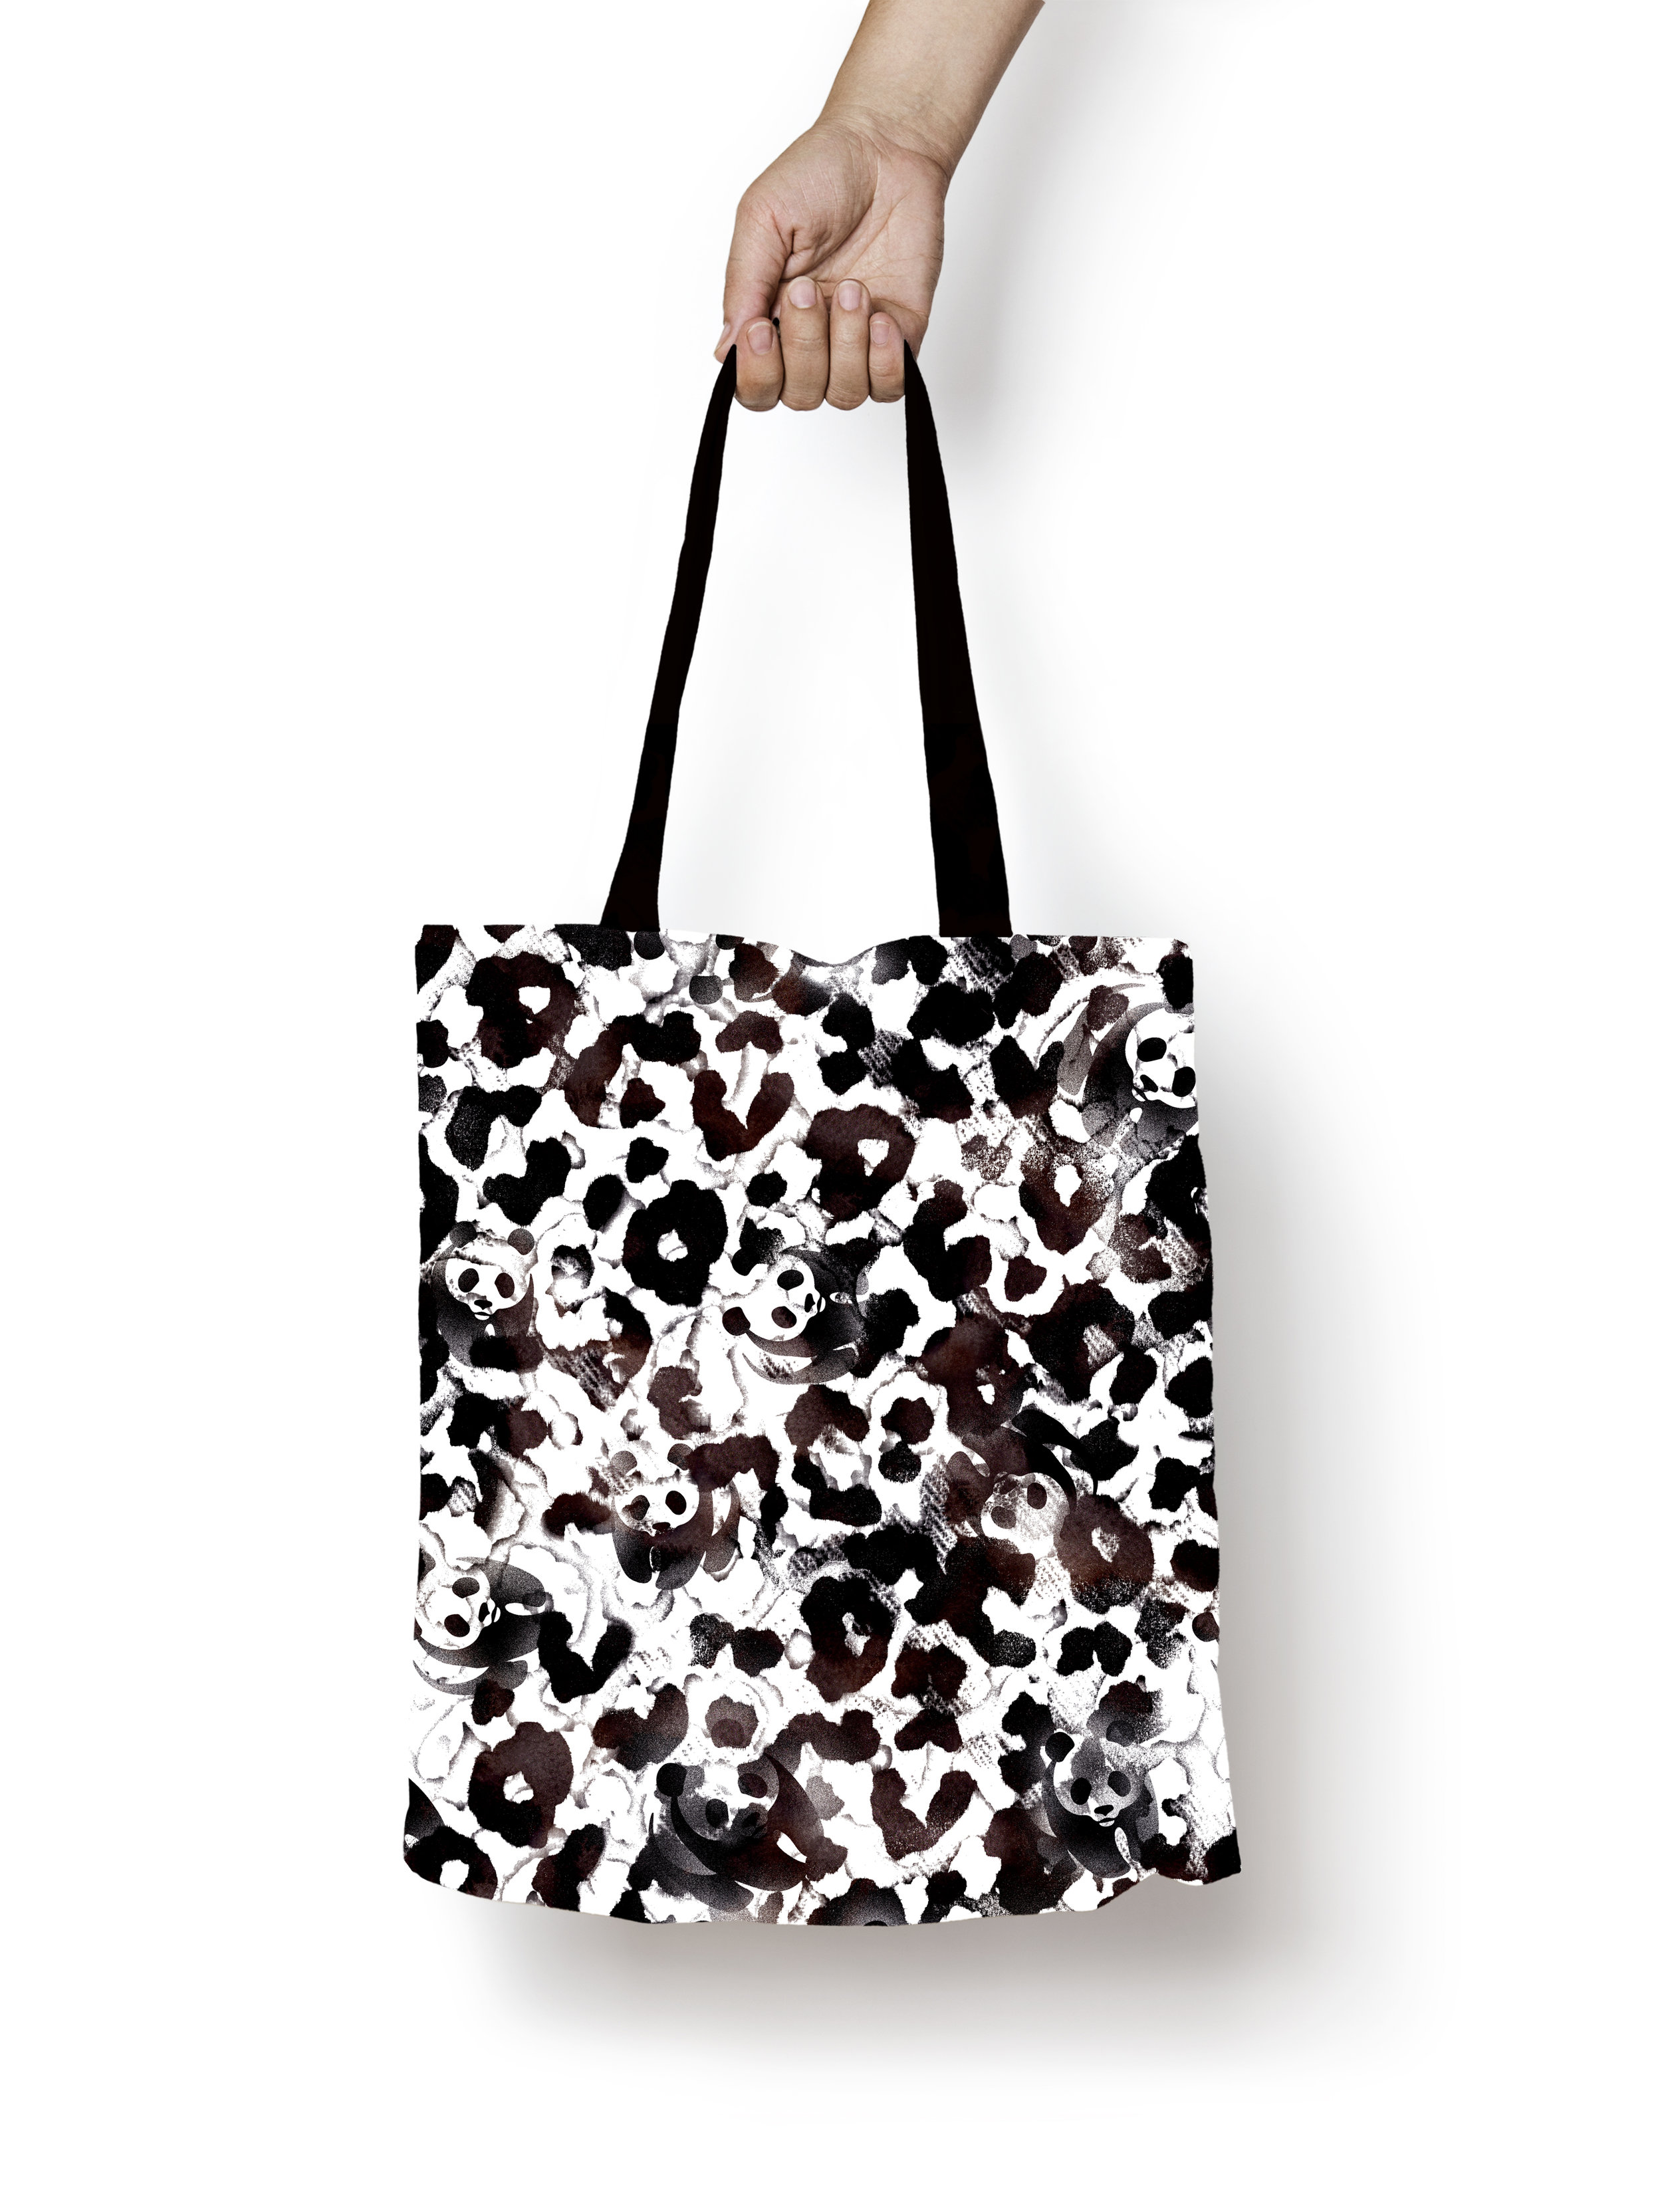 ...And the matching bag!